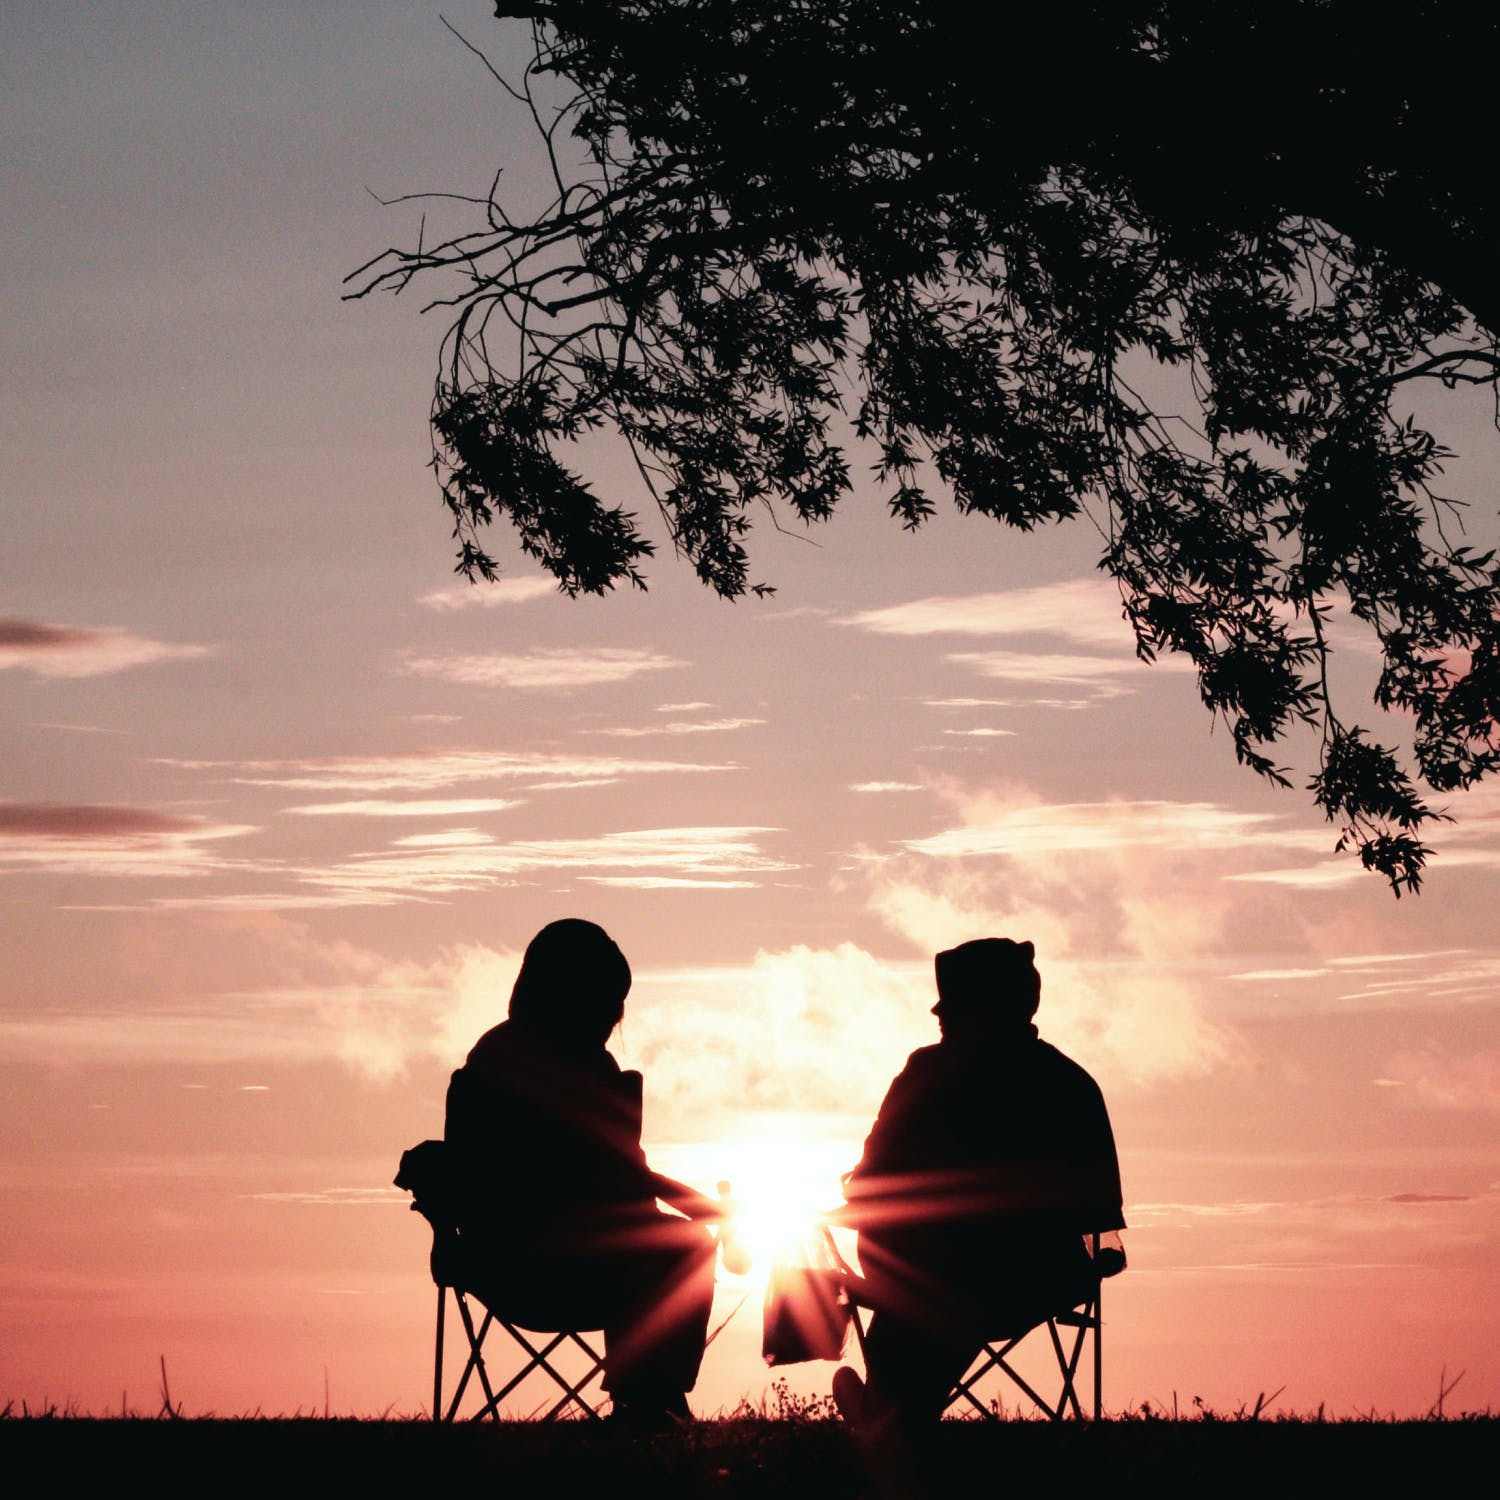 A silhouette of two people seated outside, under a tree.